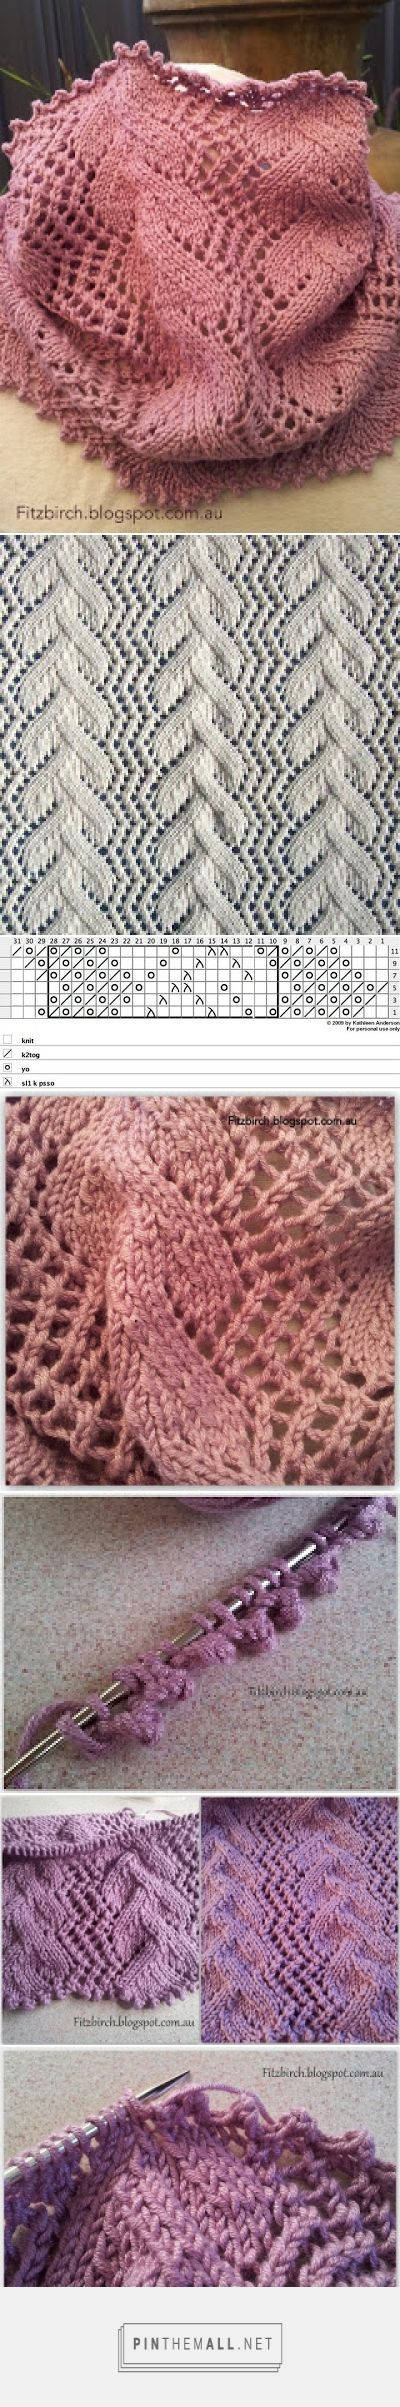 """Lace Knitting with antique """"Vine Tidy"""" pattern: Trellis Vine Cowl by FitzBirch Crafts. Picot cast on and picot bind off. ~~"""